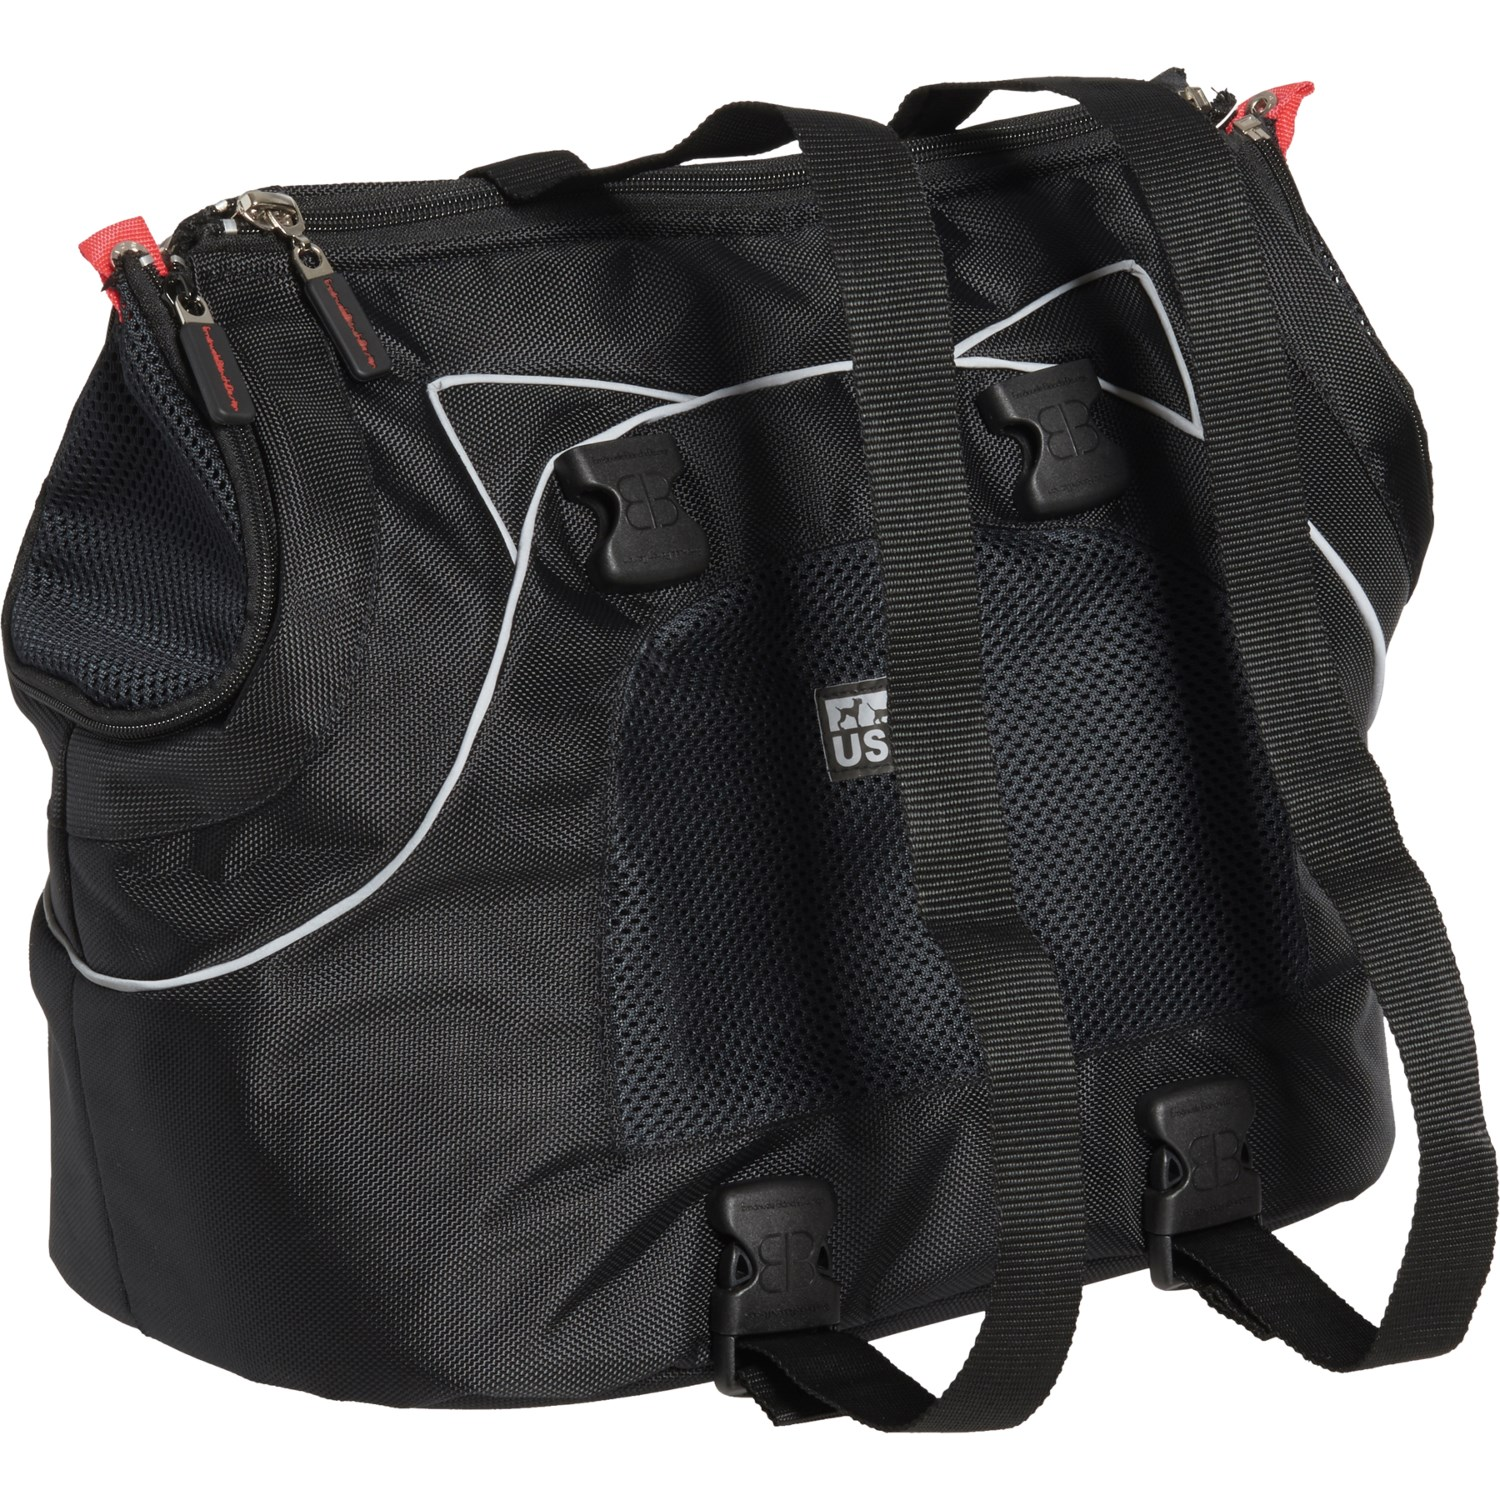 383598aae90b PetEgo™ Universal Sport Bag Plus Pet Carrier - Airline Approved ...